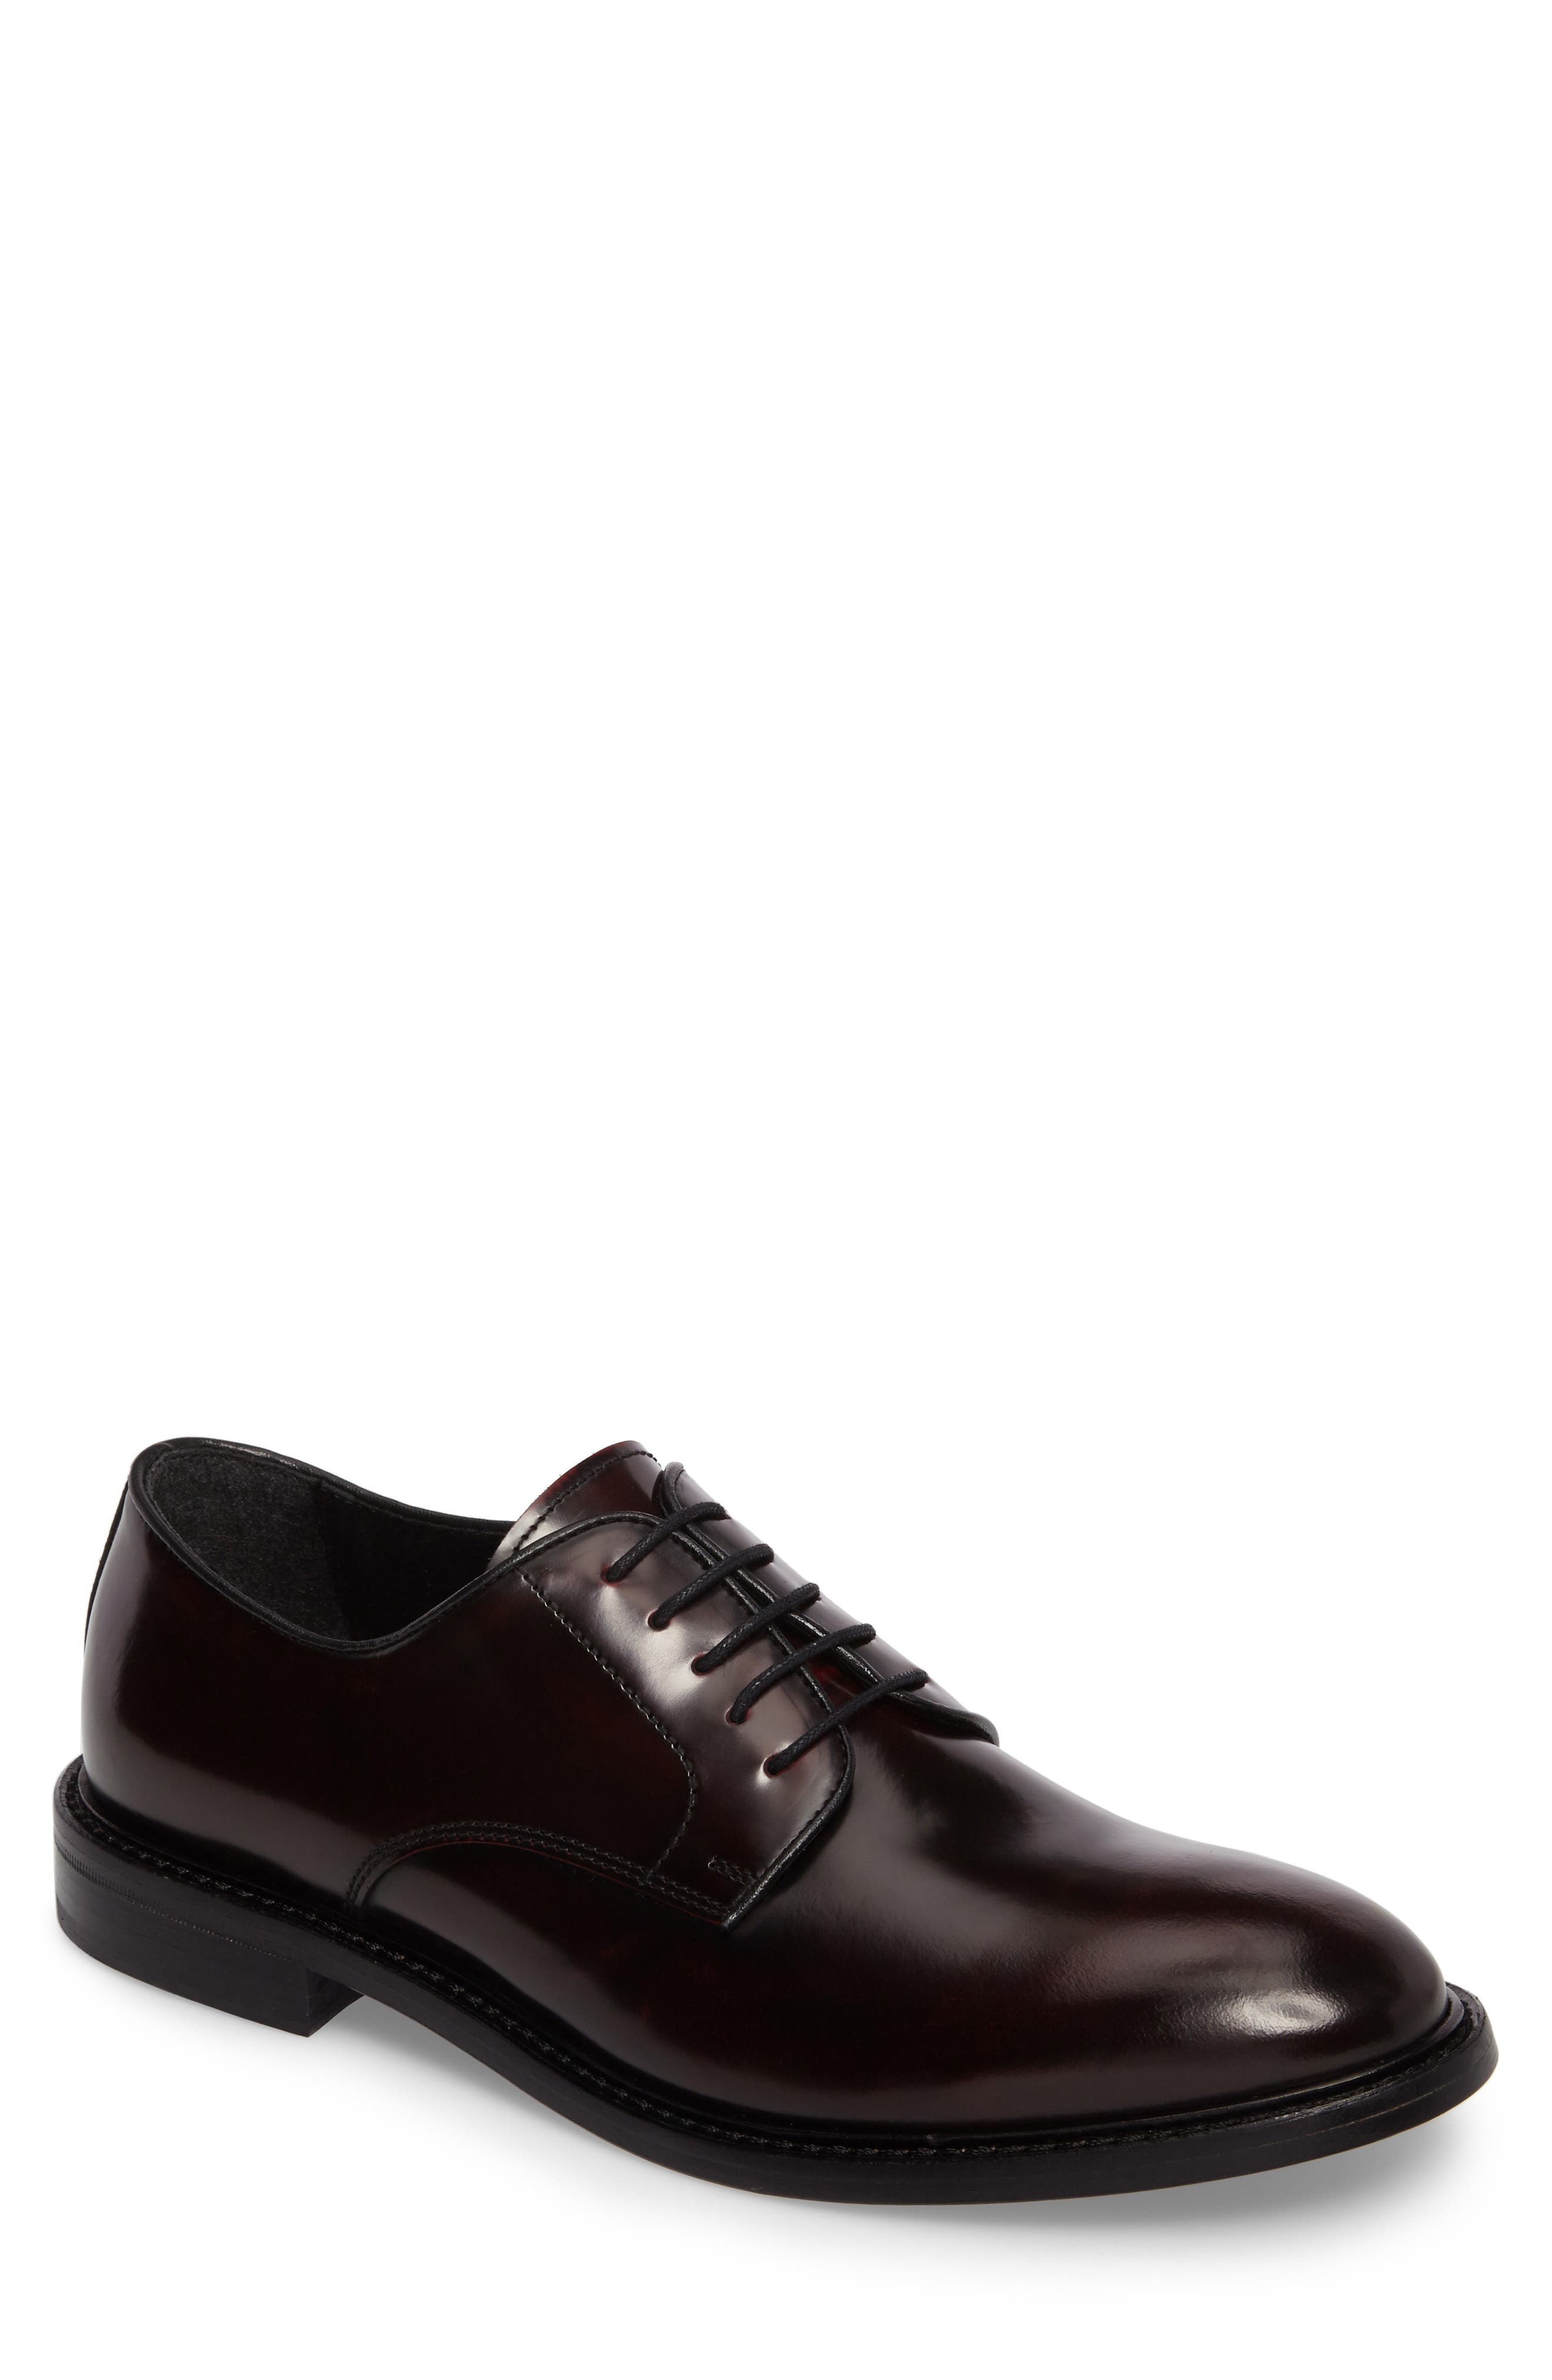 Kenneth Cole New York Plain Toe Derby (Men)